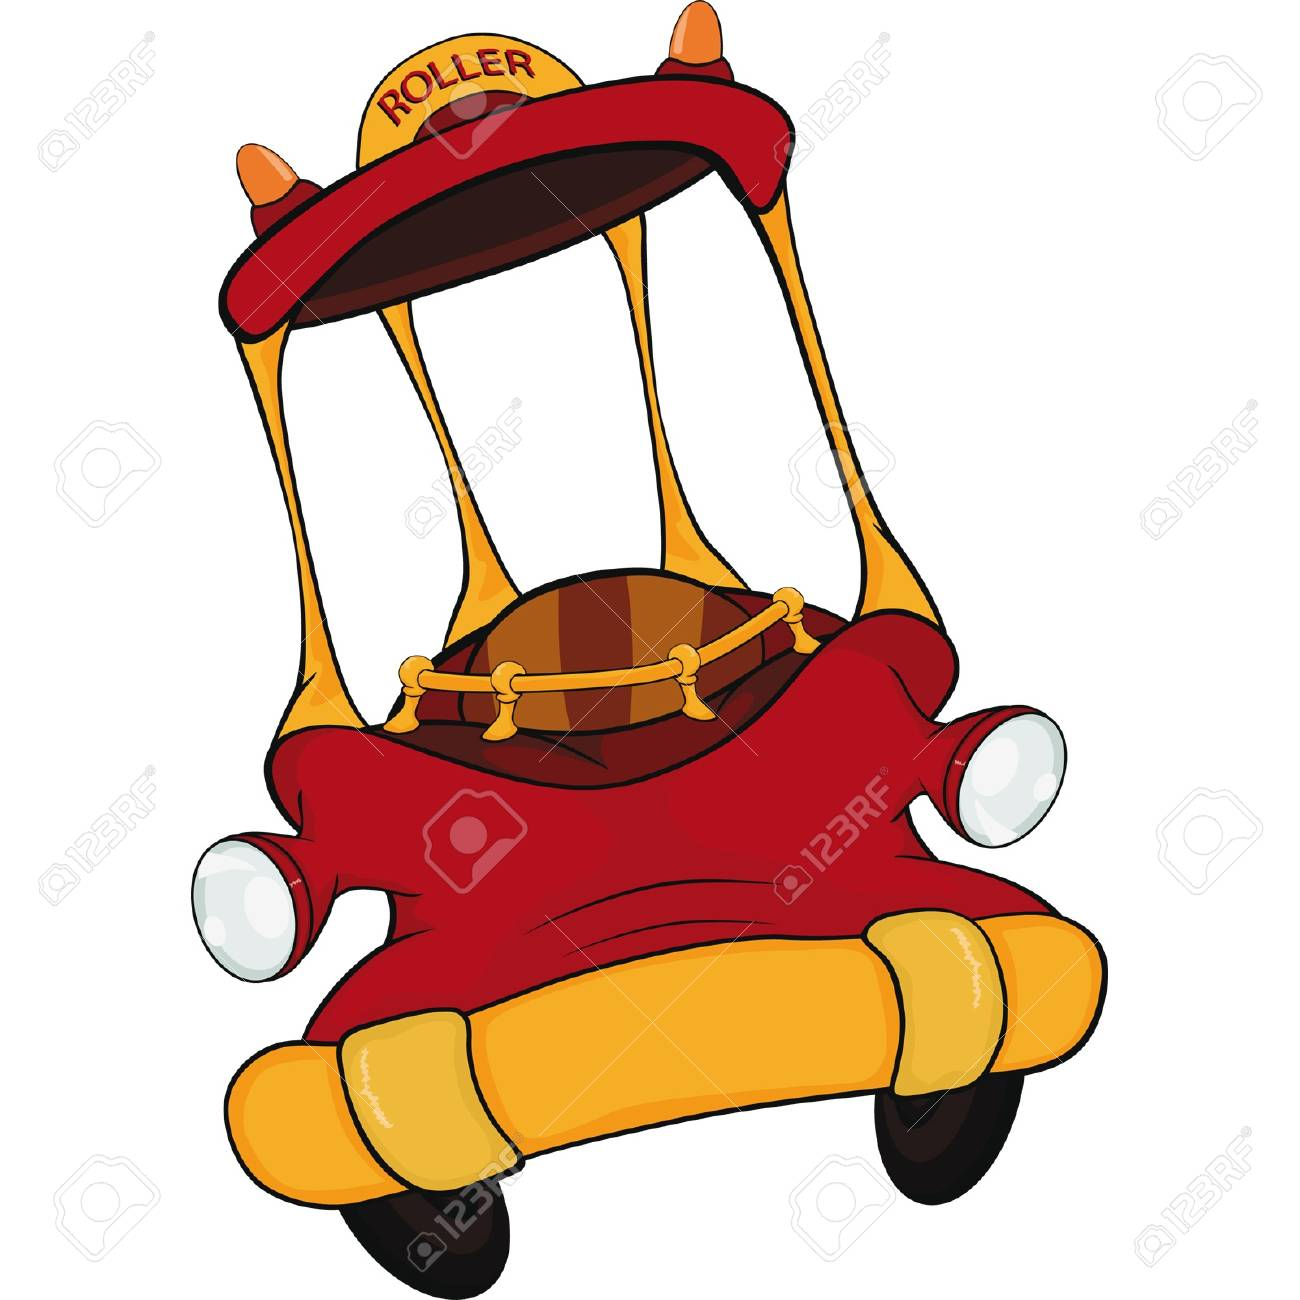 The toy red car Stock Vector - 12486636